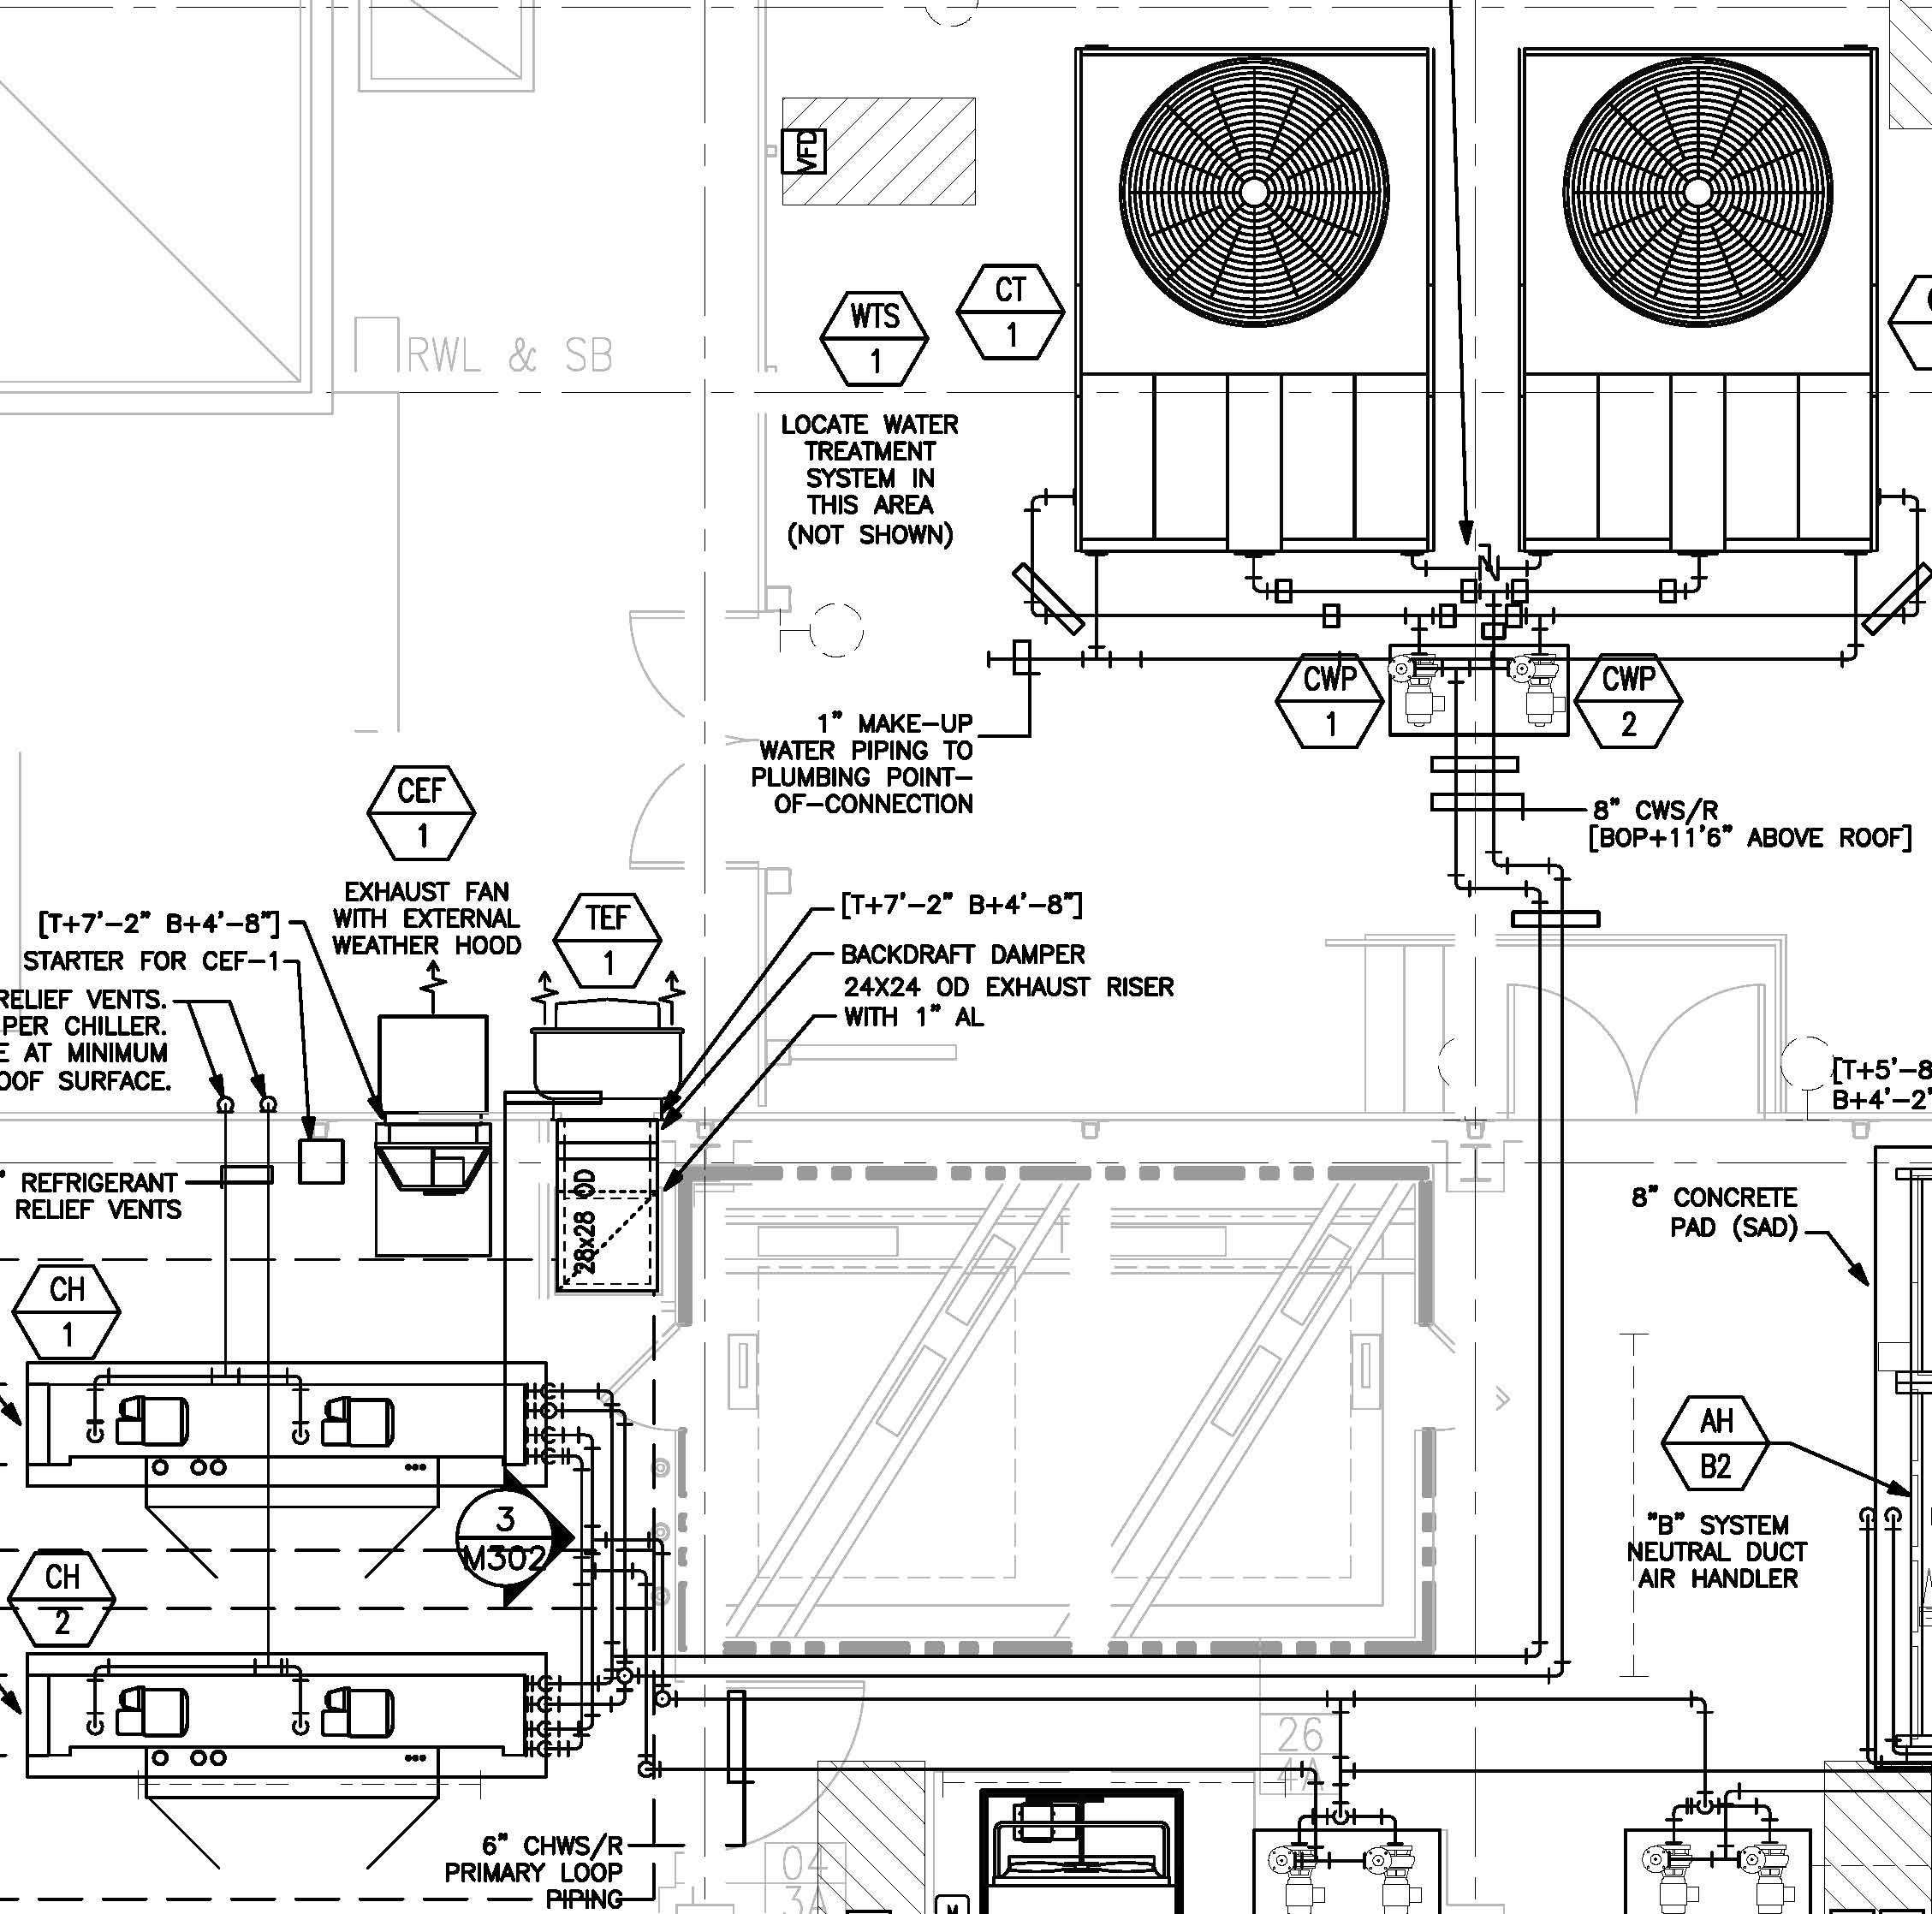 Semi Truck Air System Diagram Well Pump House Plans and System Diagrams Breaking the Rules A Step Of Semi Truck Air System Diagram